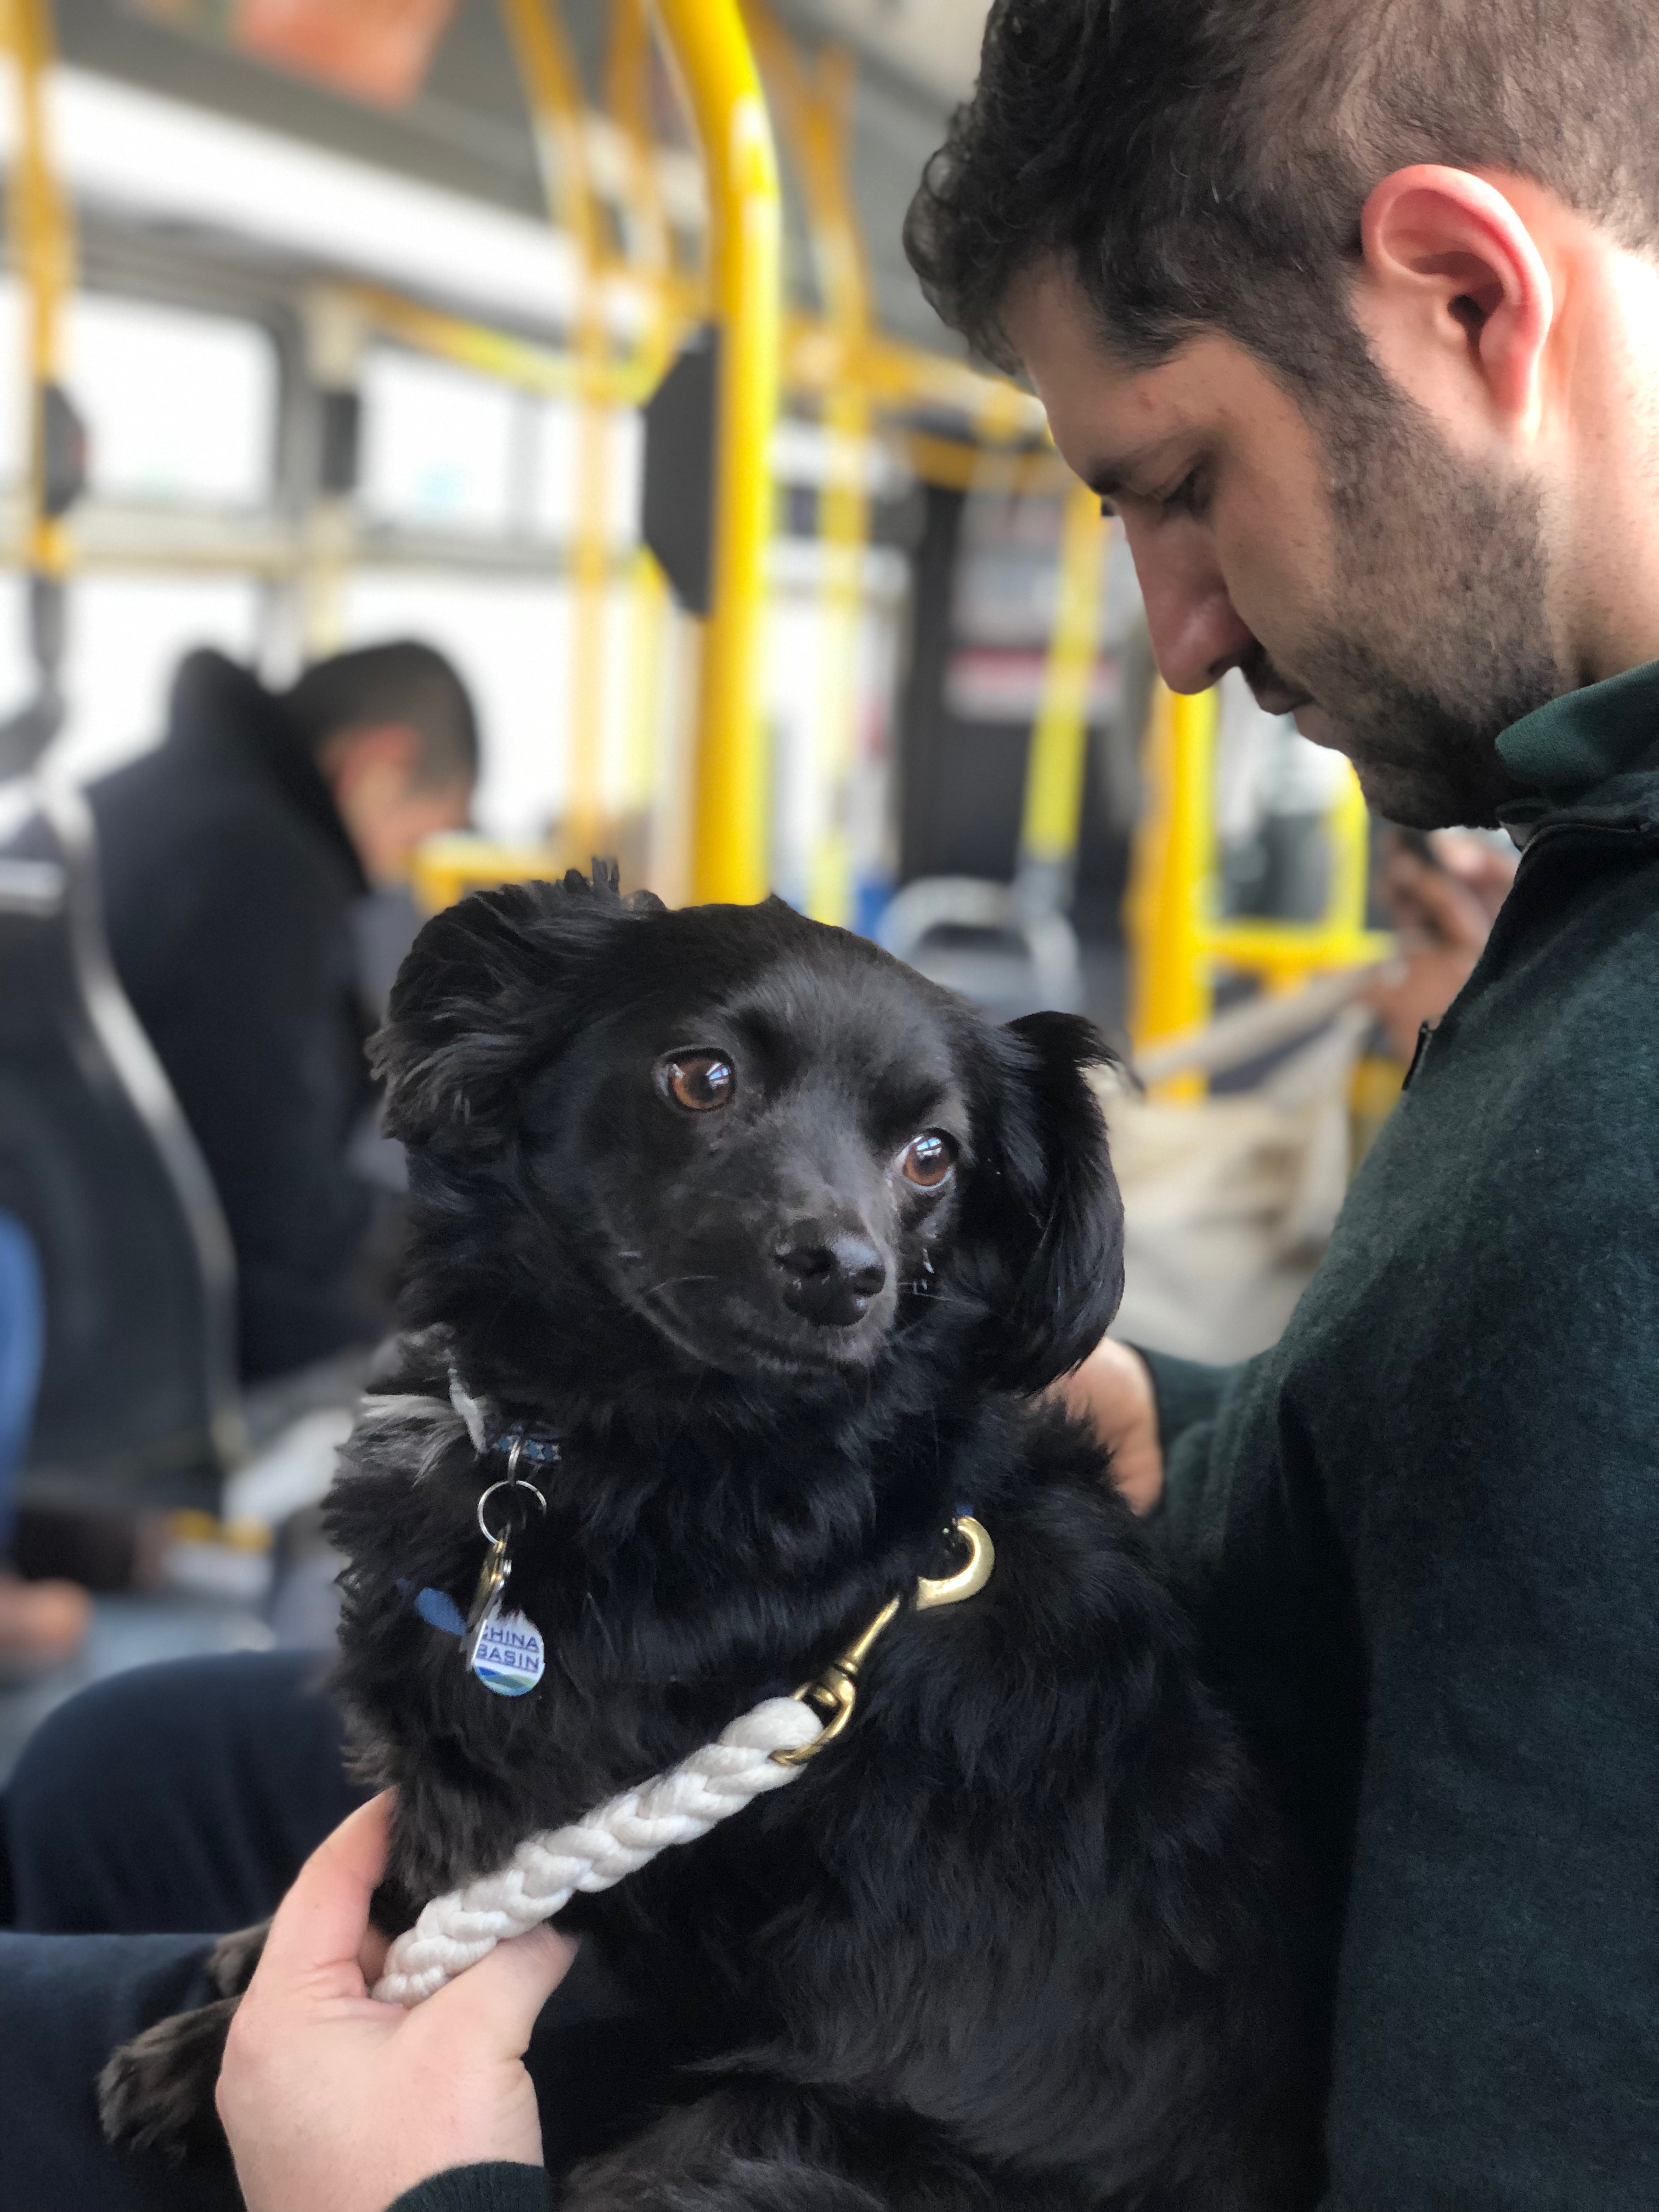 Man With Fluffy Pup In His Lap